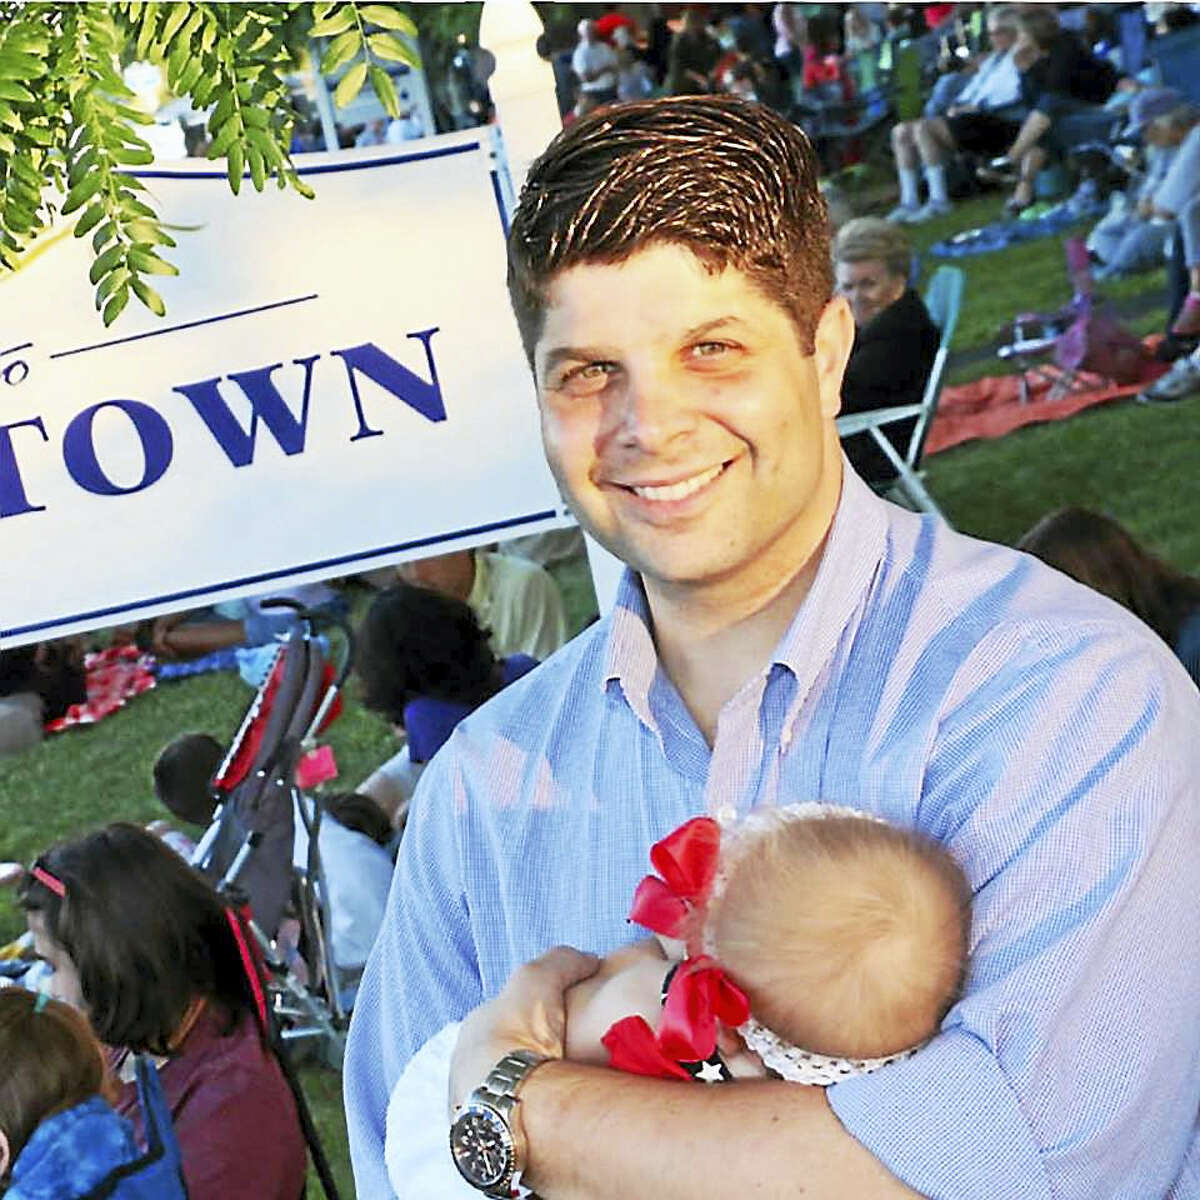 Middletown Mayor Dan Drew, 37, is shown with his daughter Lily, now 16 months old.